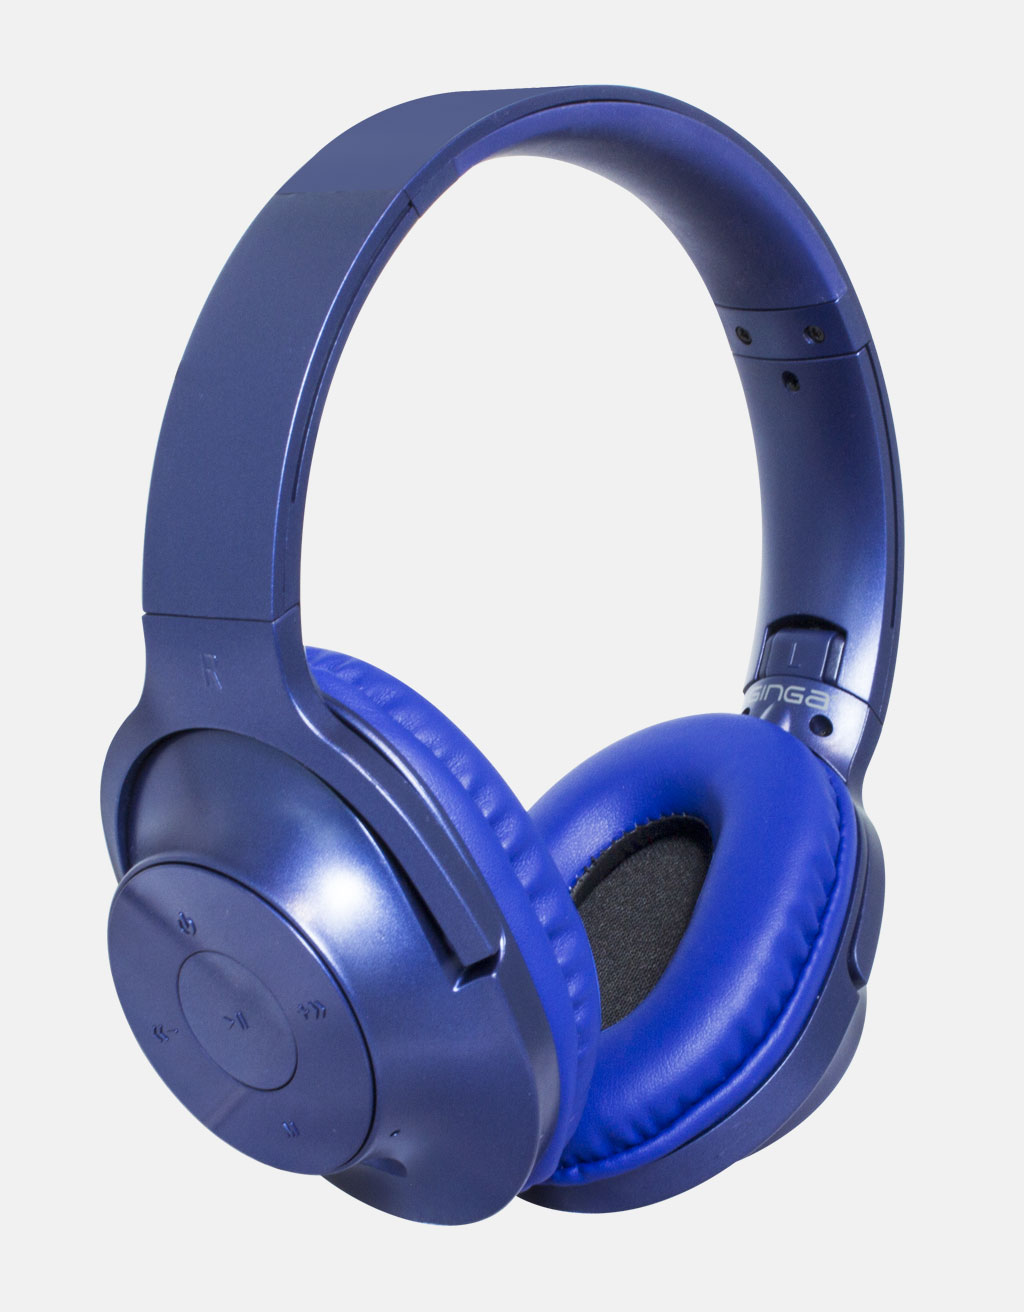 Manos Libres Para Movil Audífonos Dj Manos Libres Bluetooth Azul Ginga Chrome Gi18adj01bt